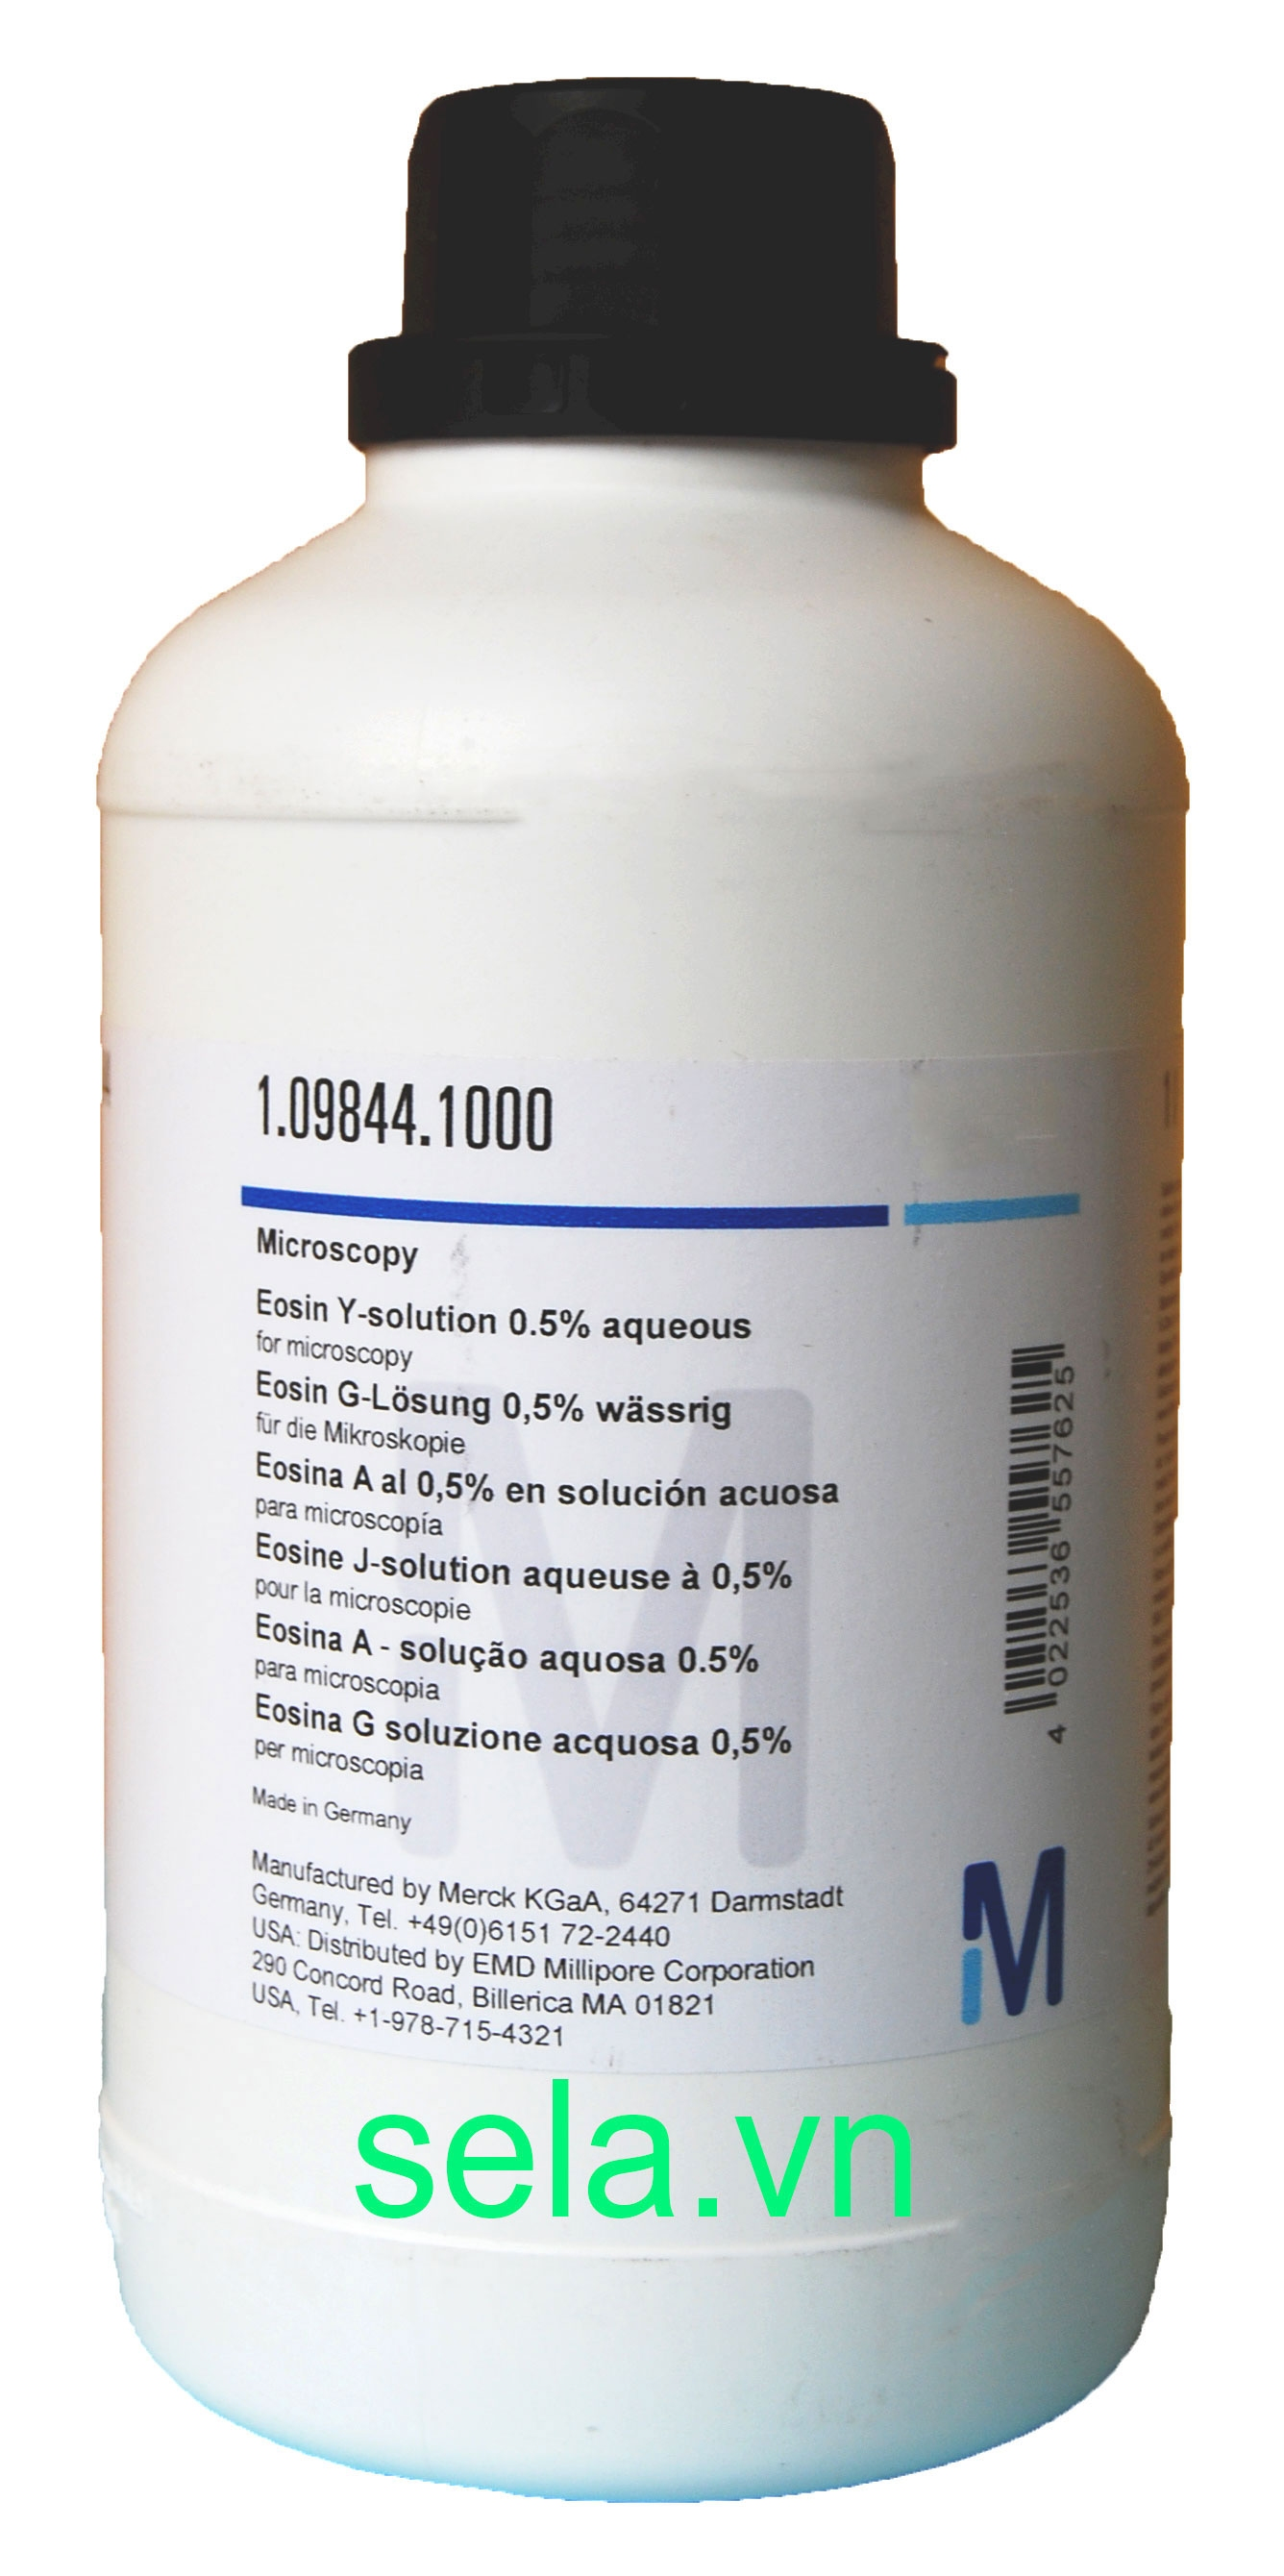 Eosin Y-solution 0.5% aqueous for microscopy